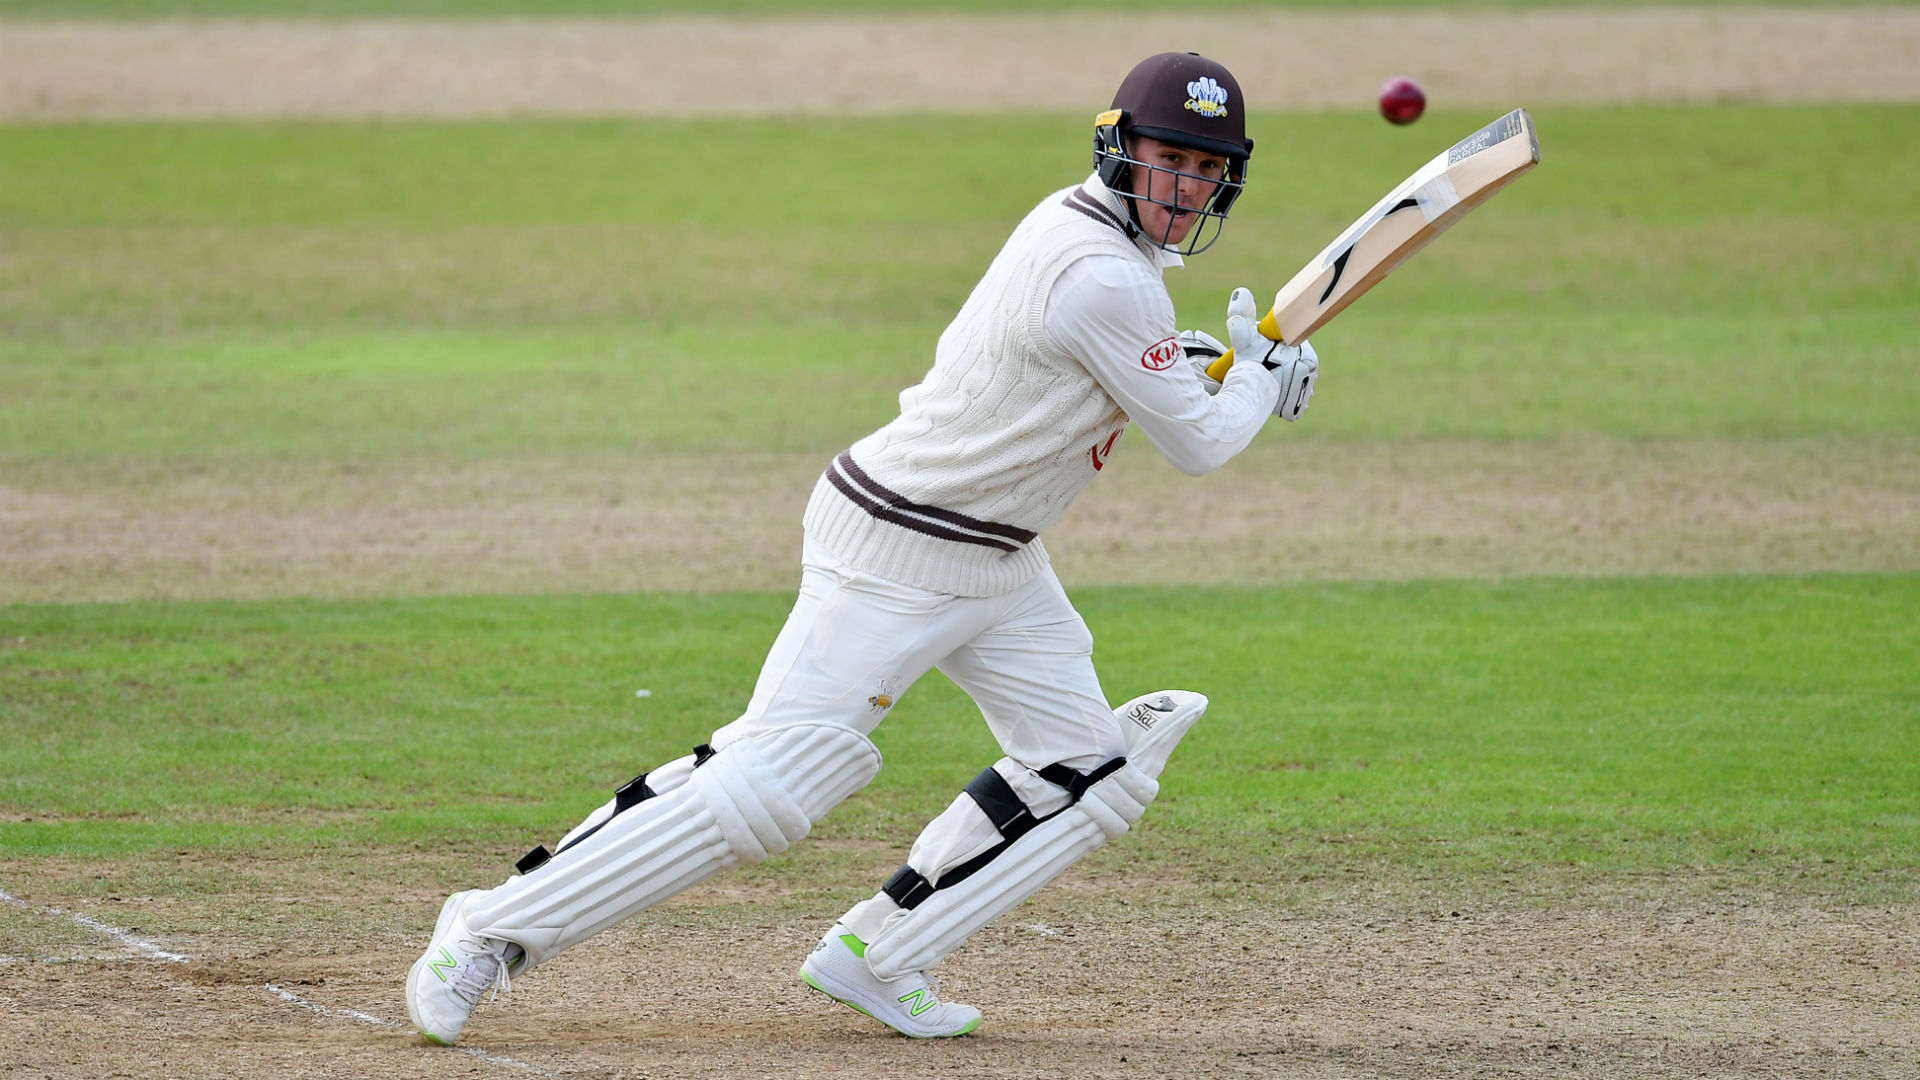 Gower backs Jason Roy Test call-up: He is a real talent